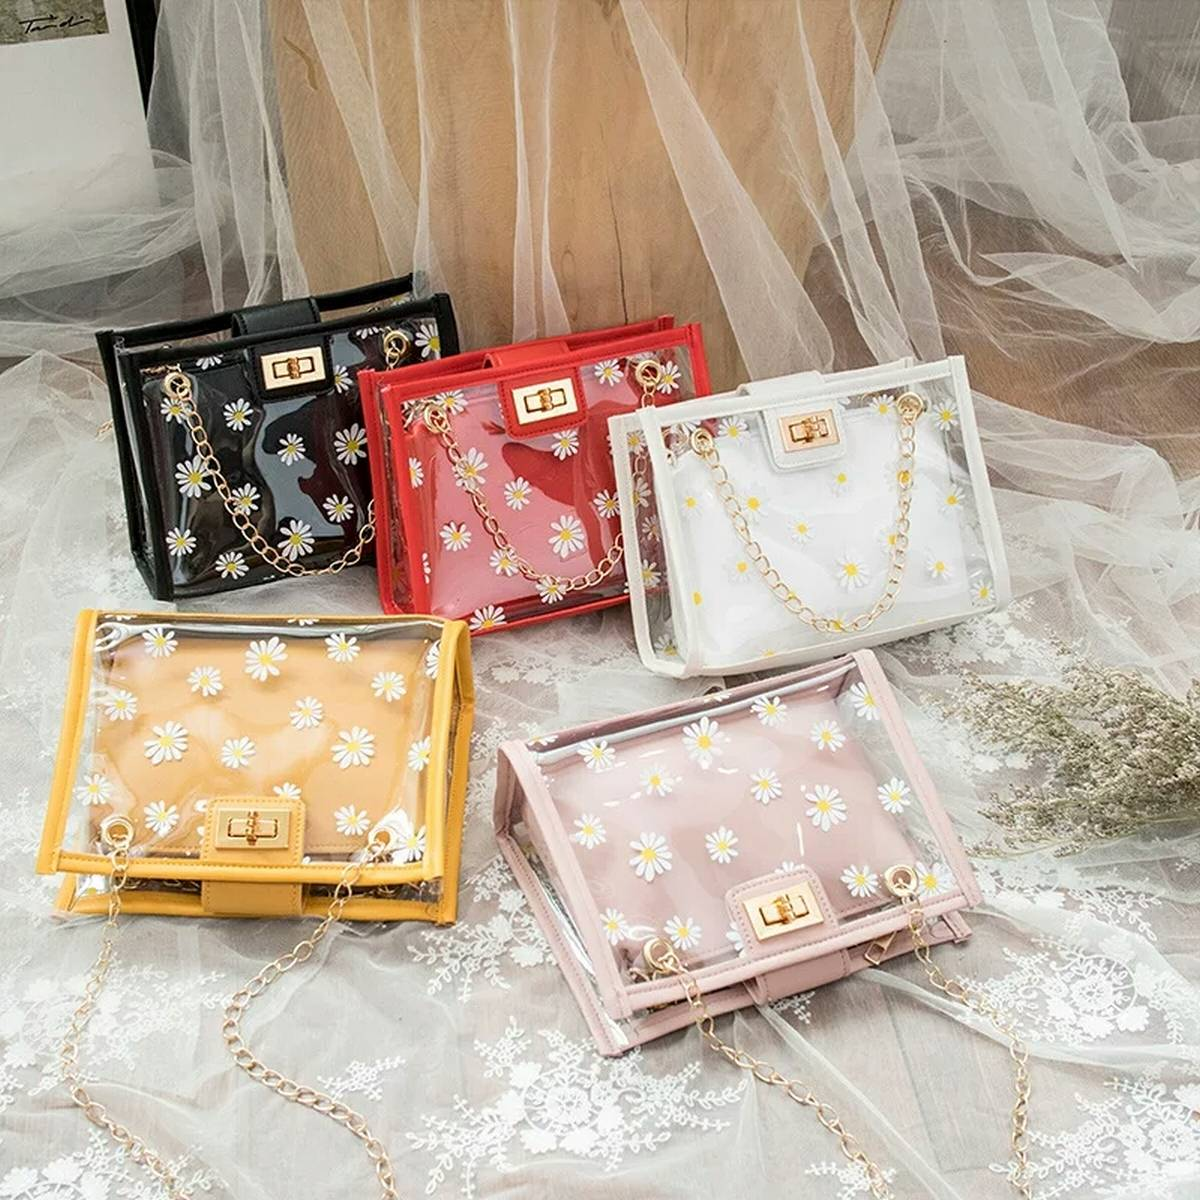 Transparent Bags for Girls Hand Bags for Women Unique Should